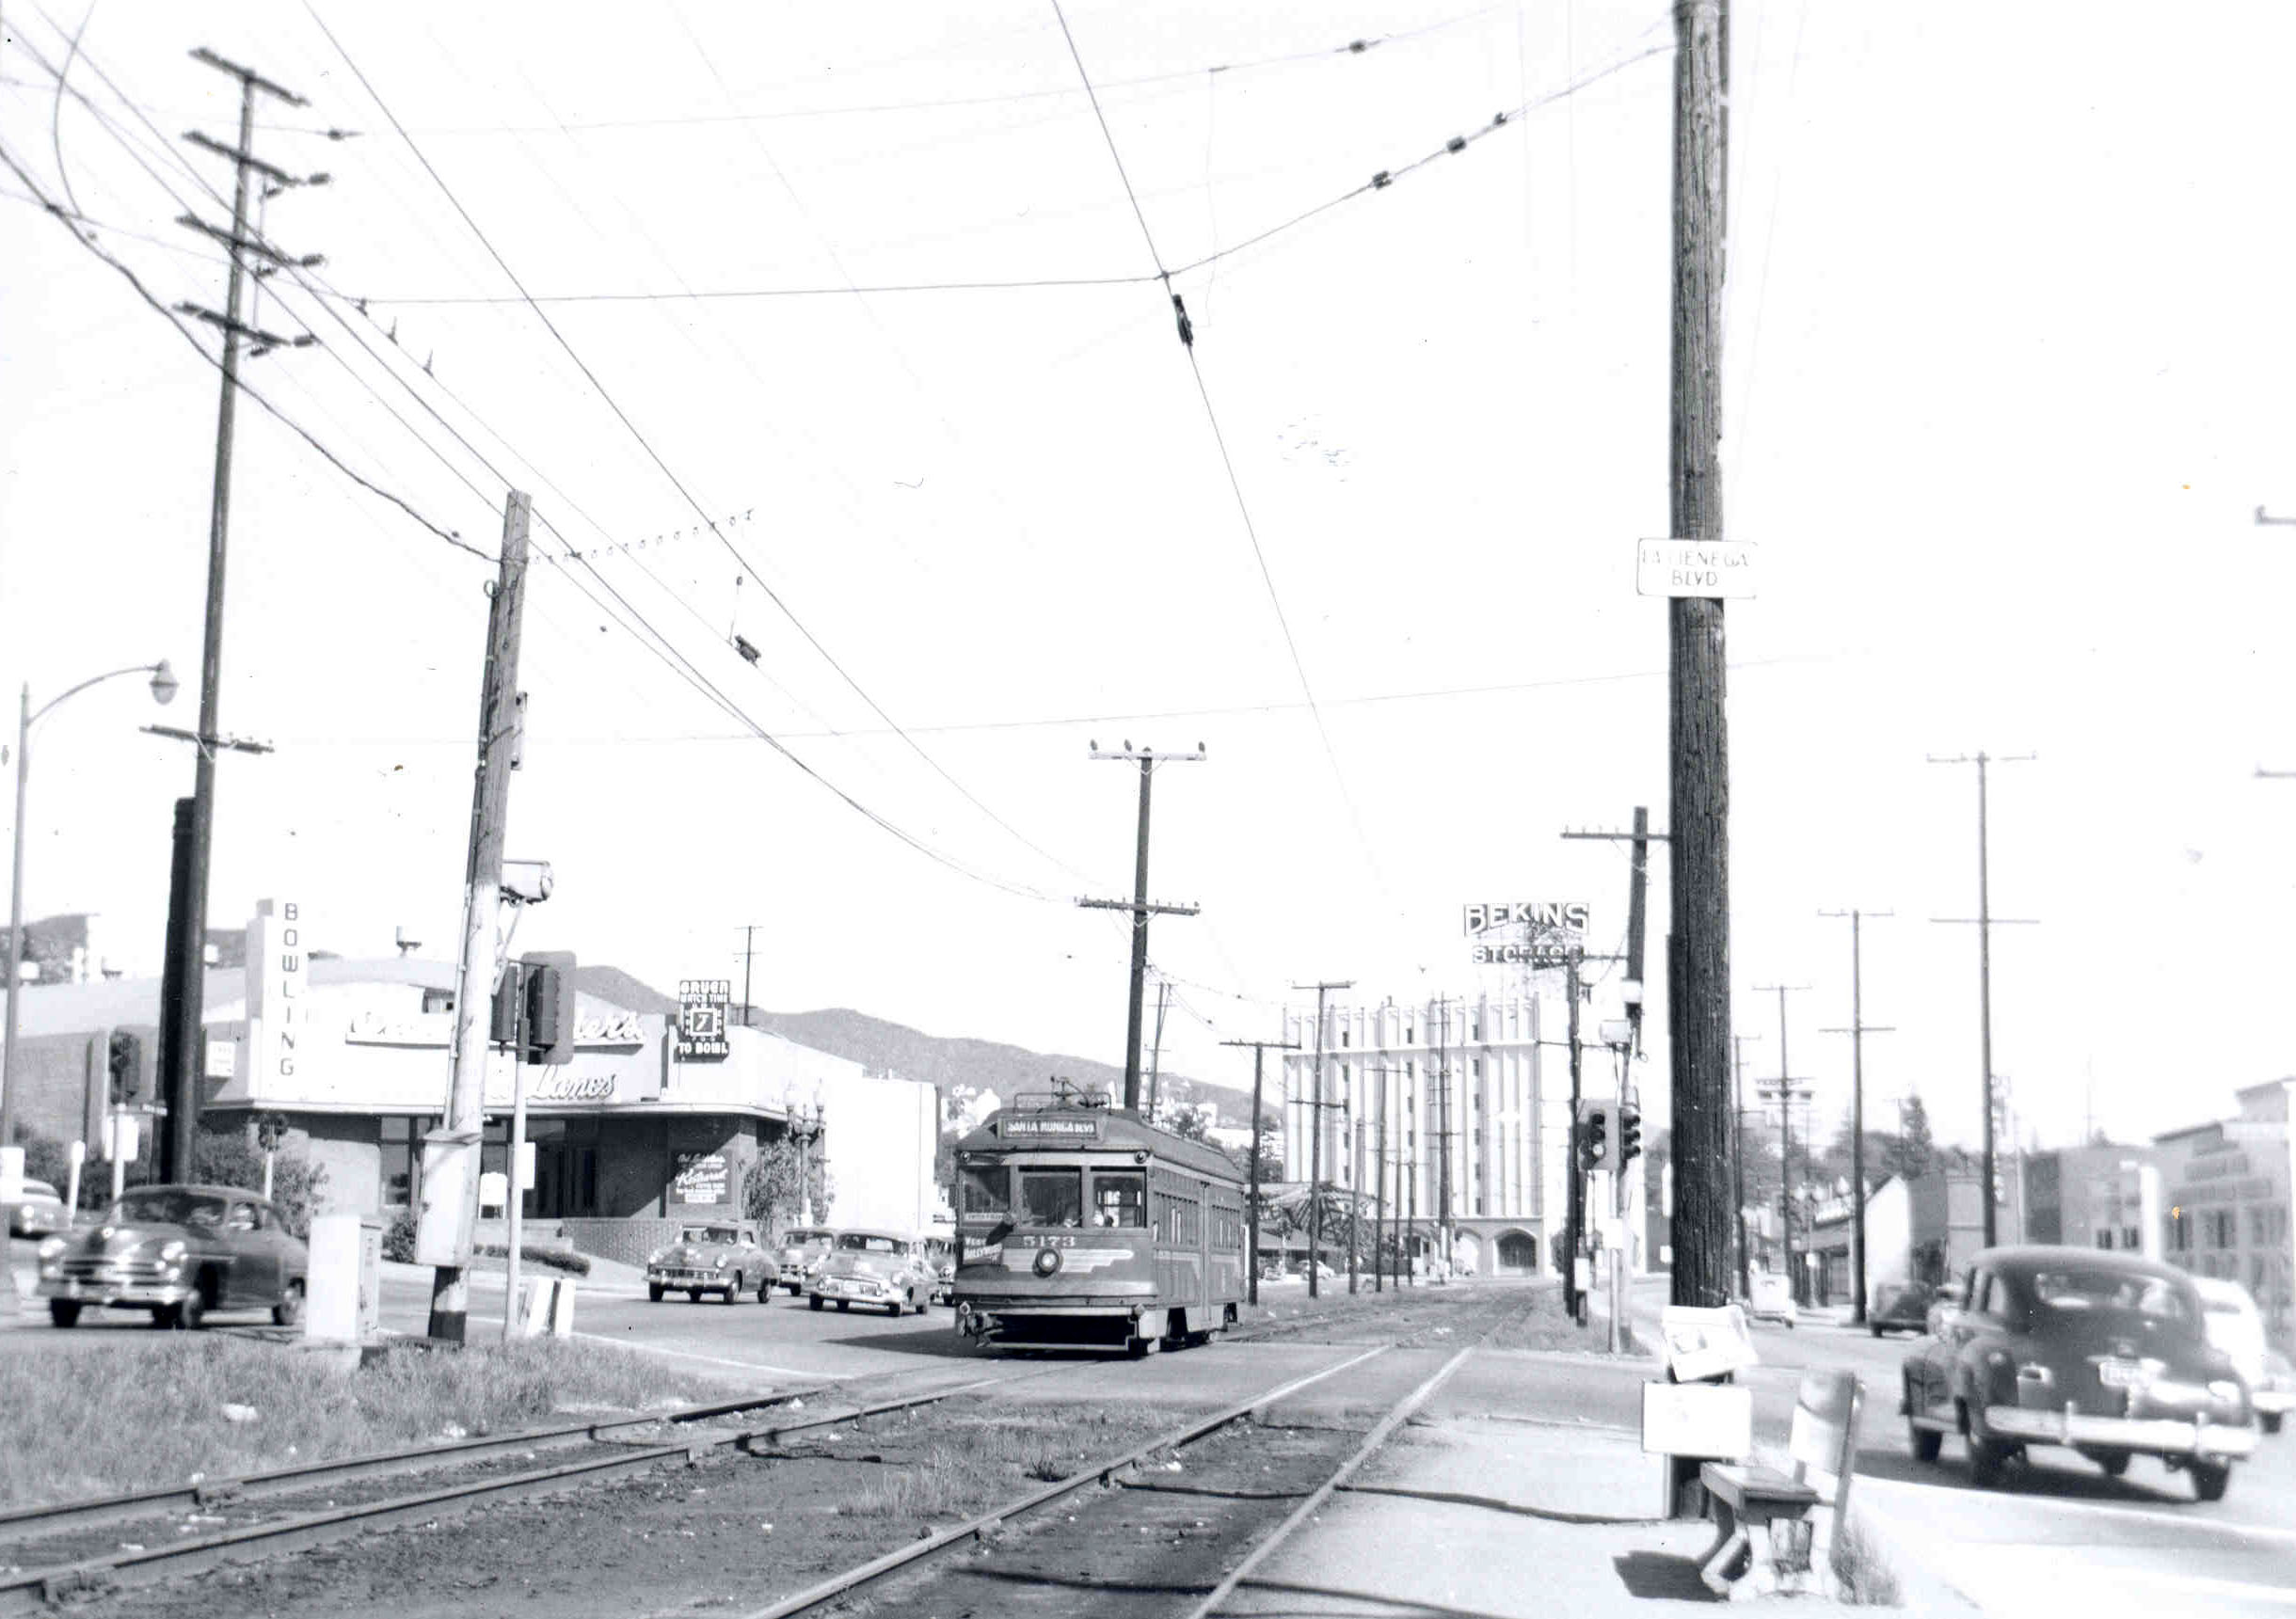 Electric railway tracks once ran down the median of Santa Monica Boulevard, shown here in West Hollywood in 1951. Courtesy of the Metro Transportation Library and Archive.